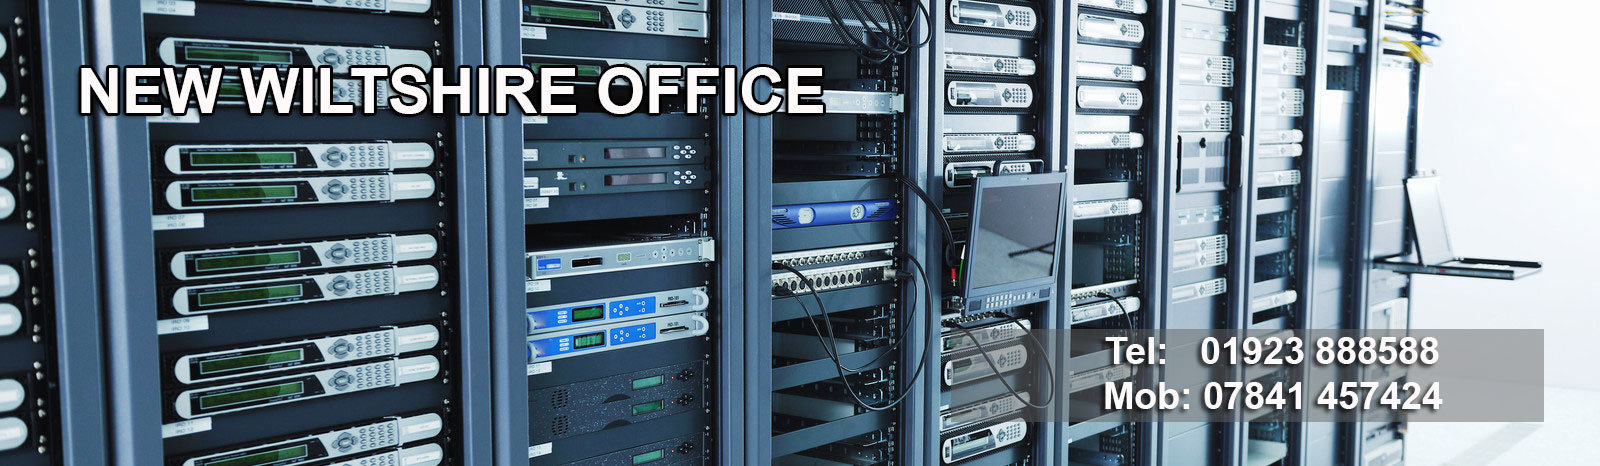 Data Cabling Wiltshire Office - NM Cabling